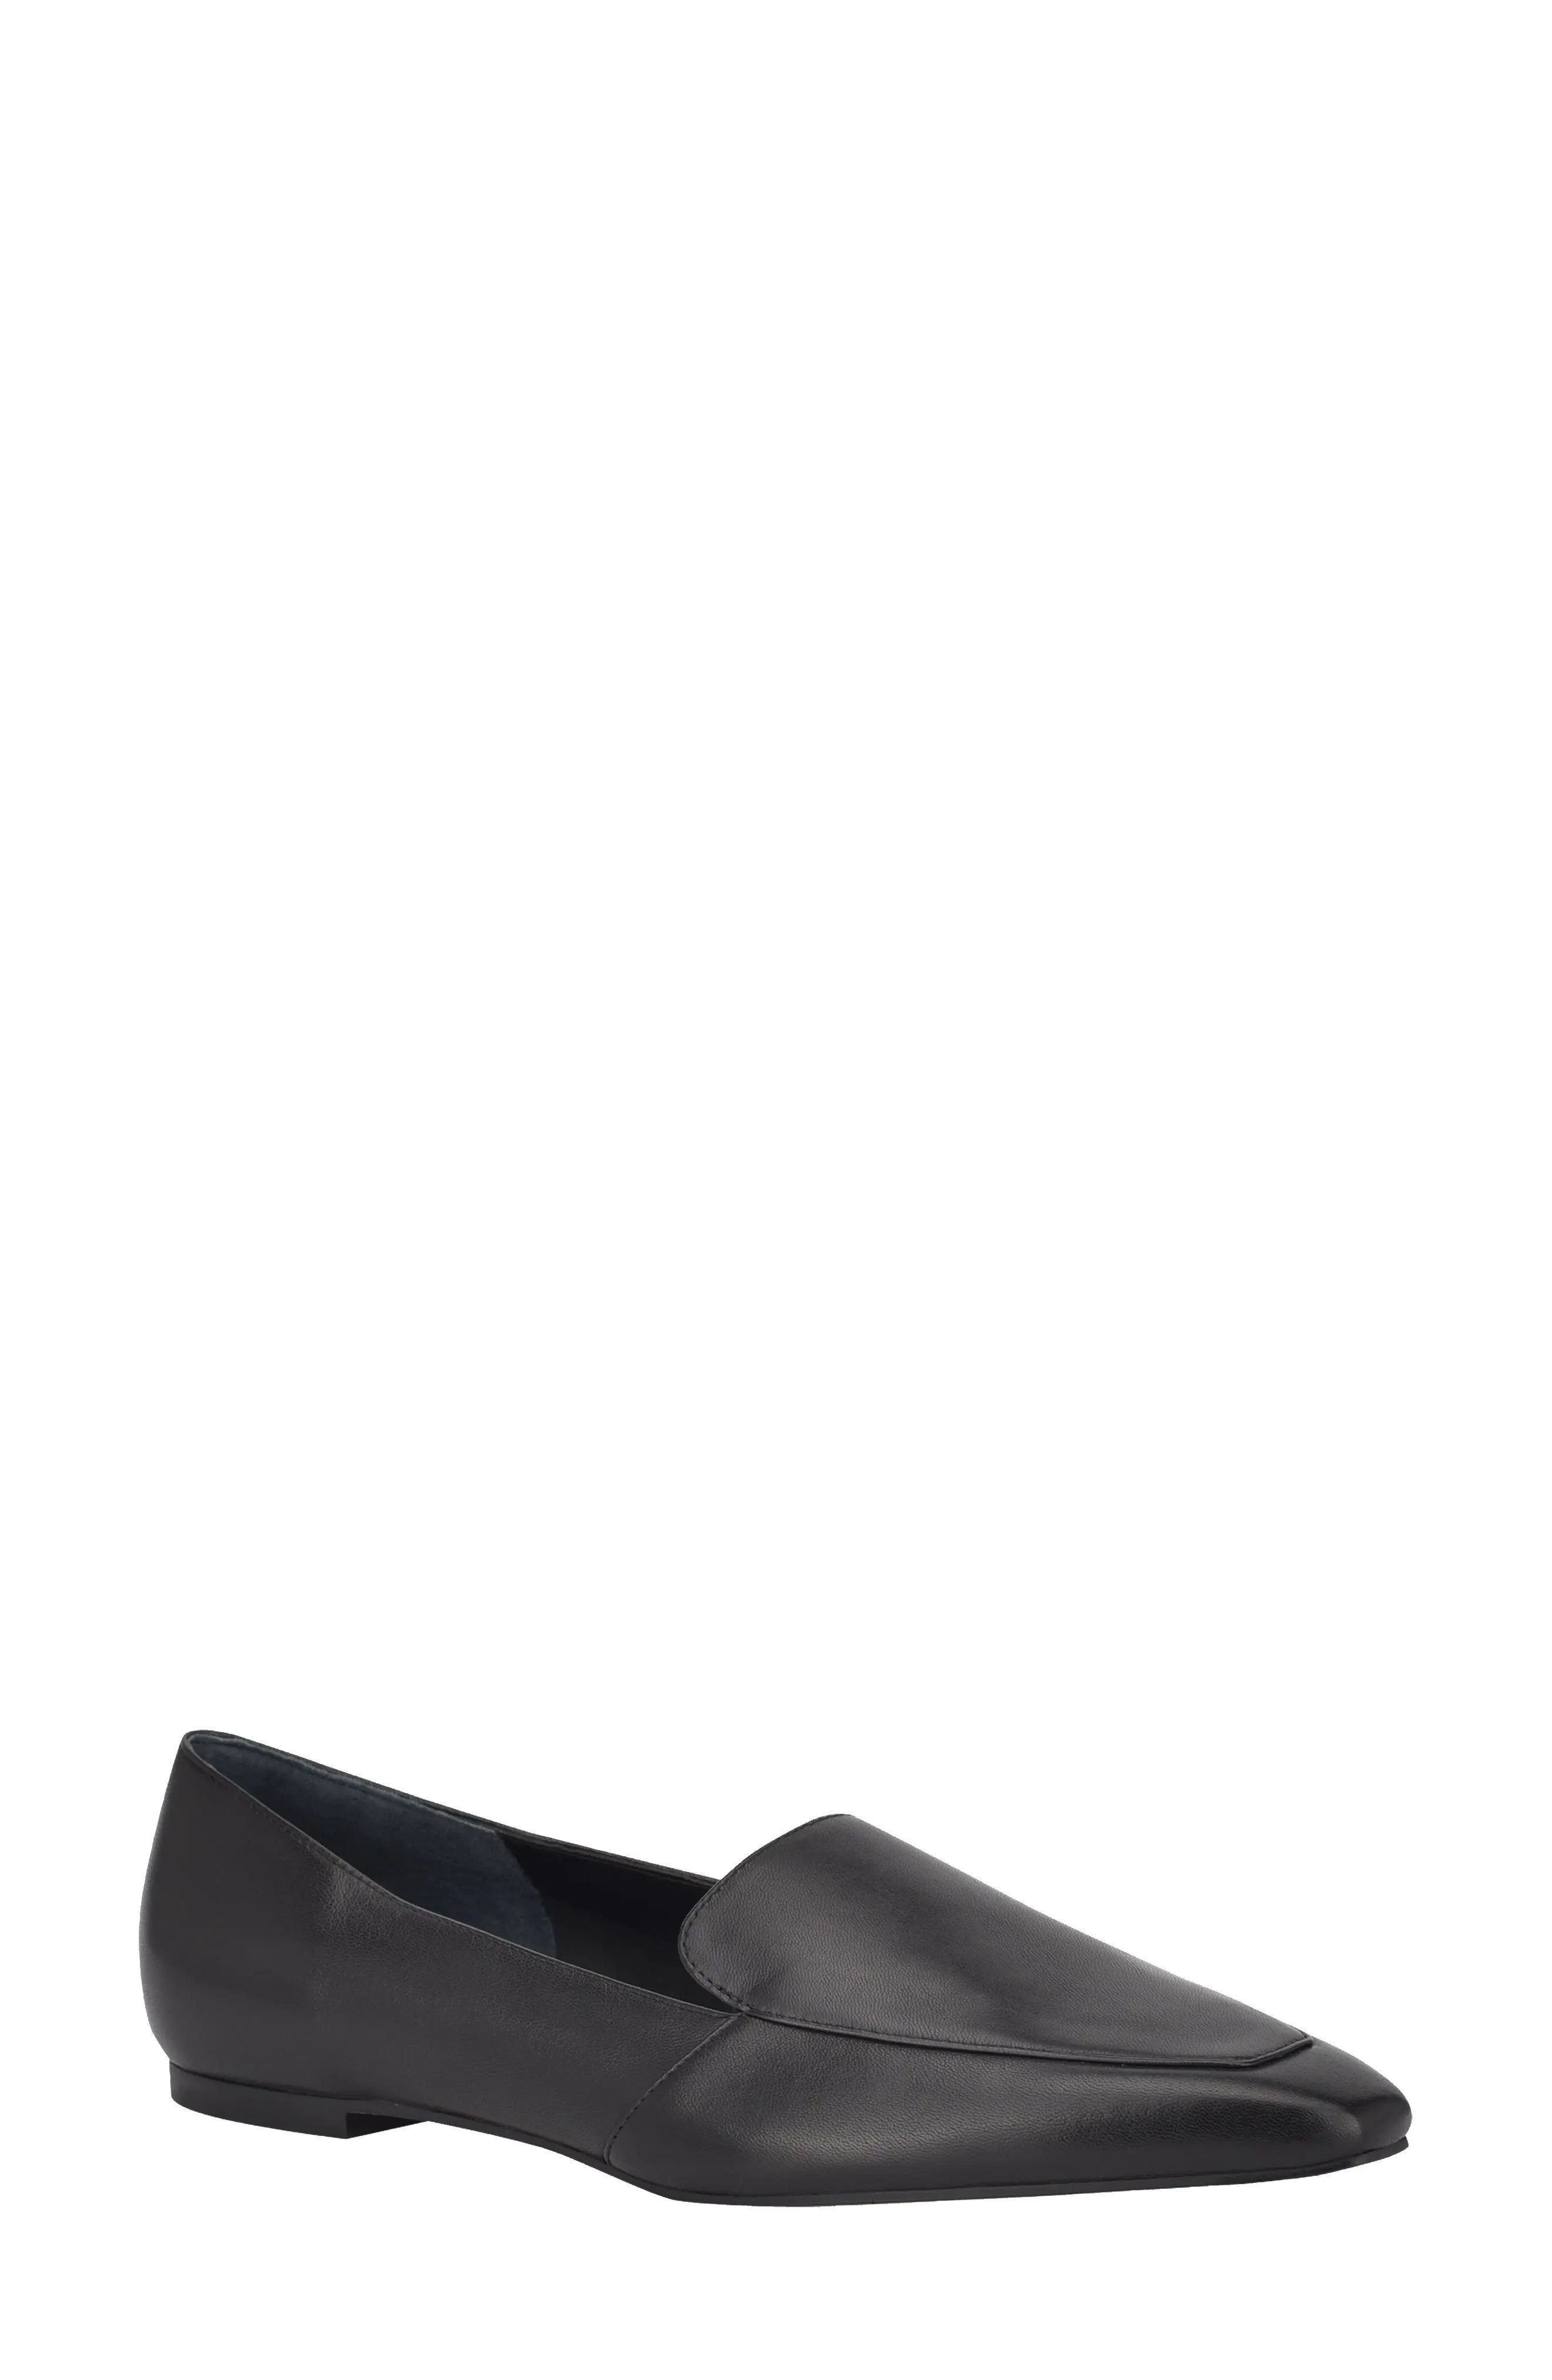 loafers slip ons for women